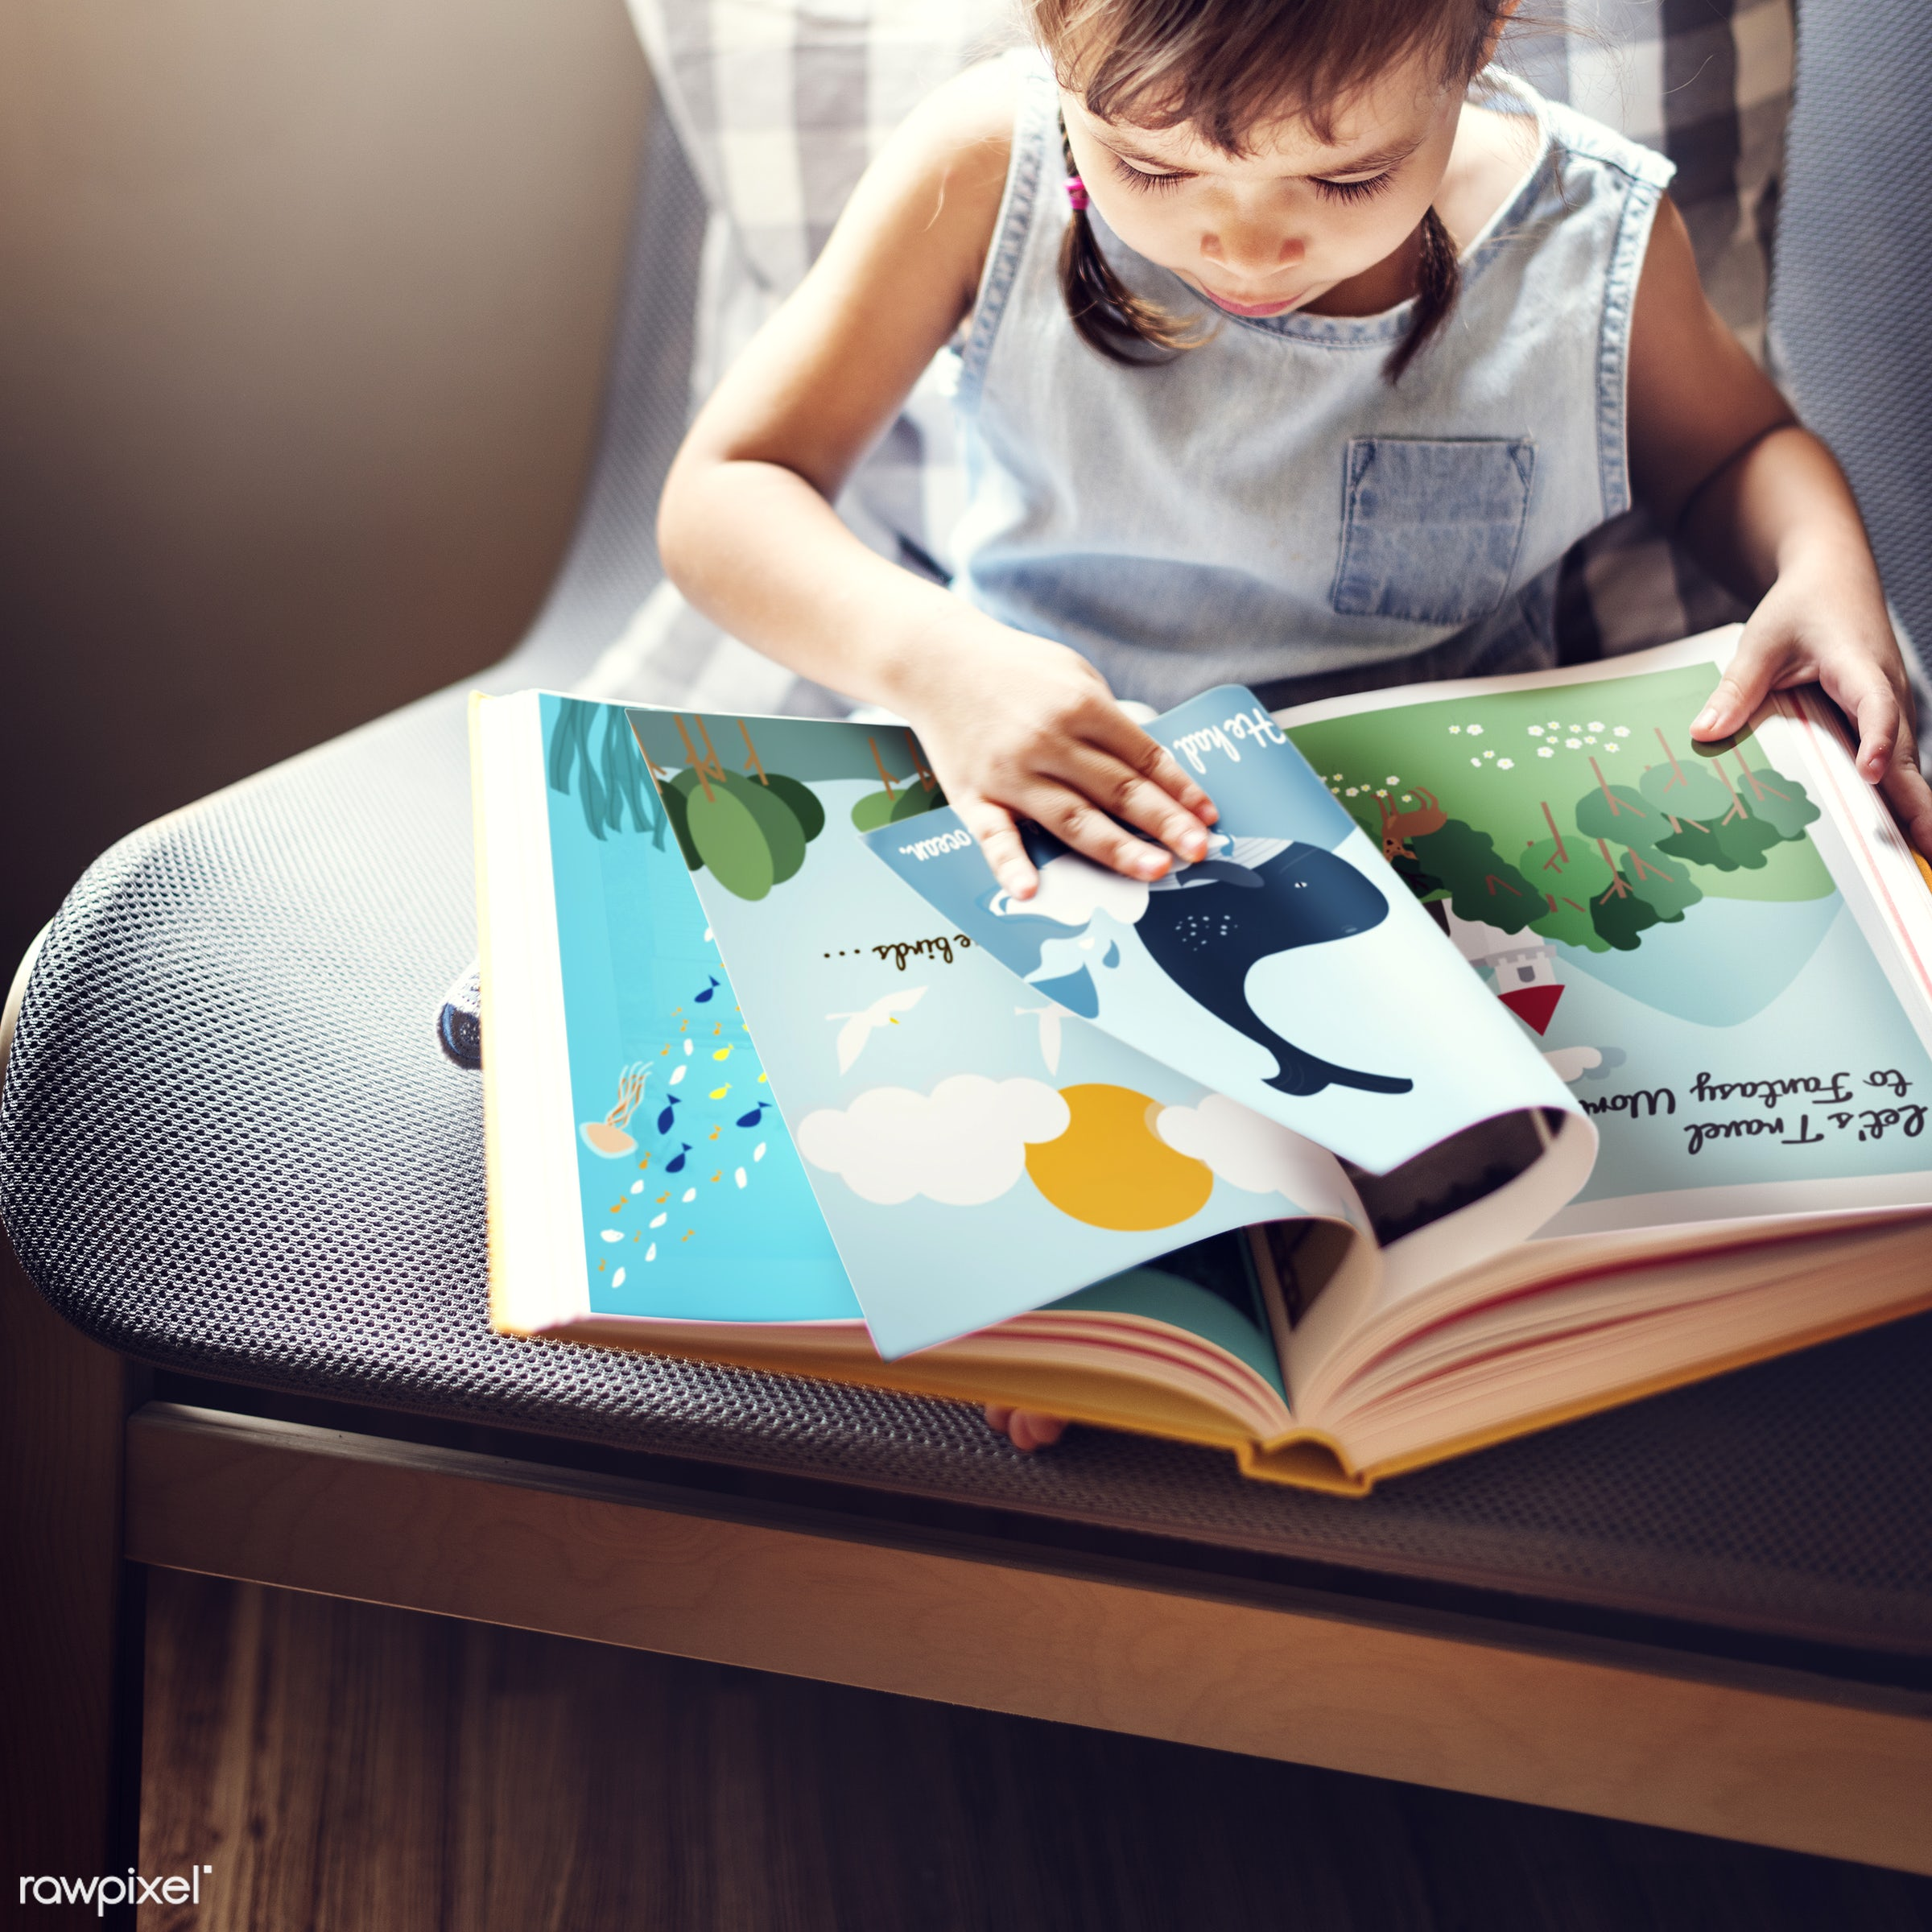 activity, adolescence, art, book, casual, cheerful, child, childhood, children, coloring, create, creativity, cute,...